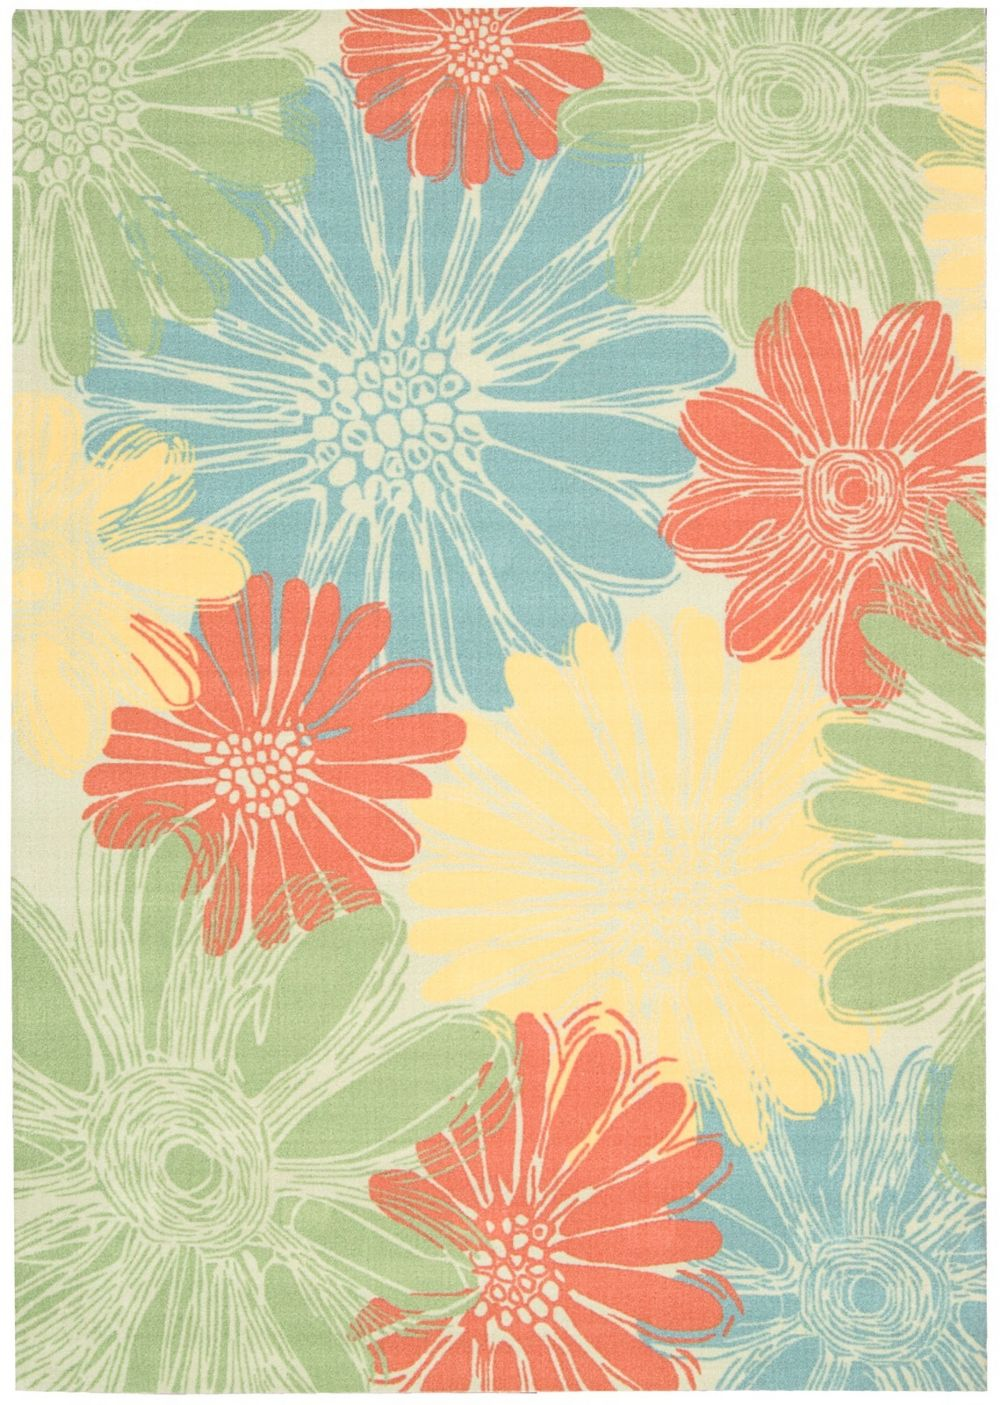 nourison home & garden country & floral area rug collection